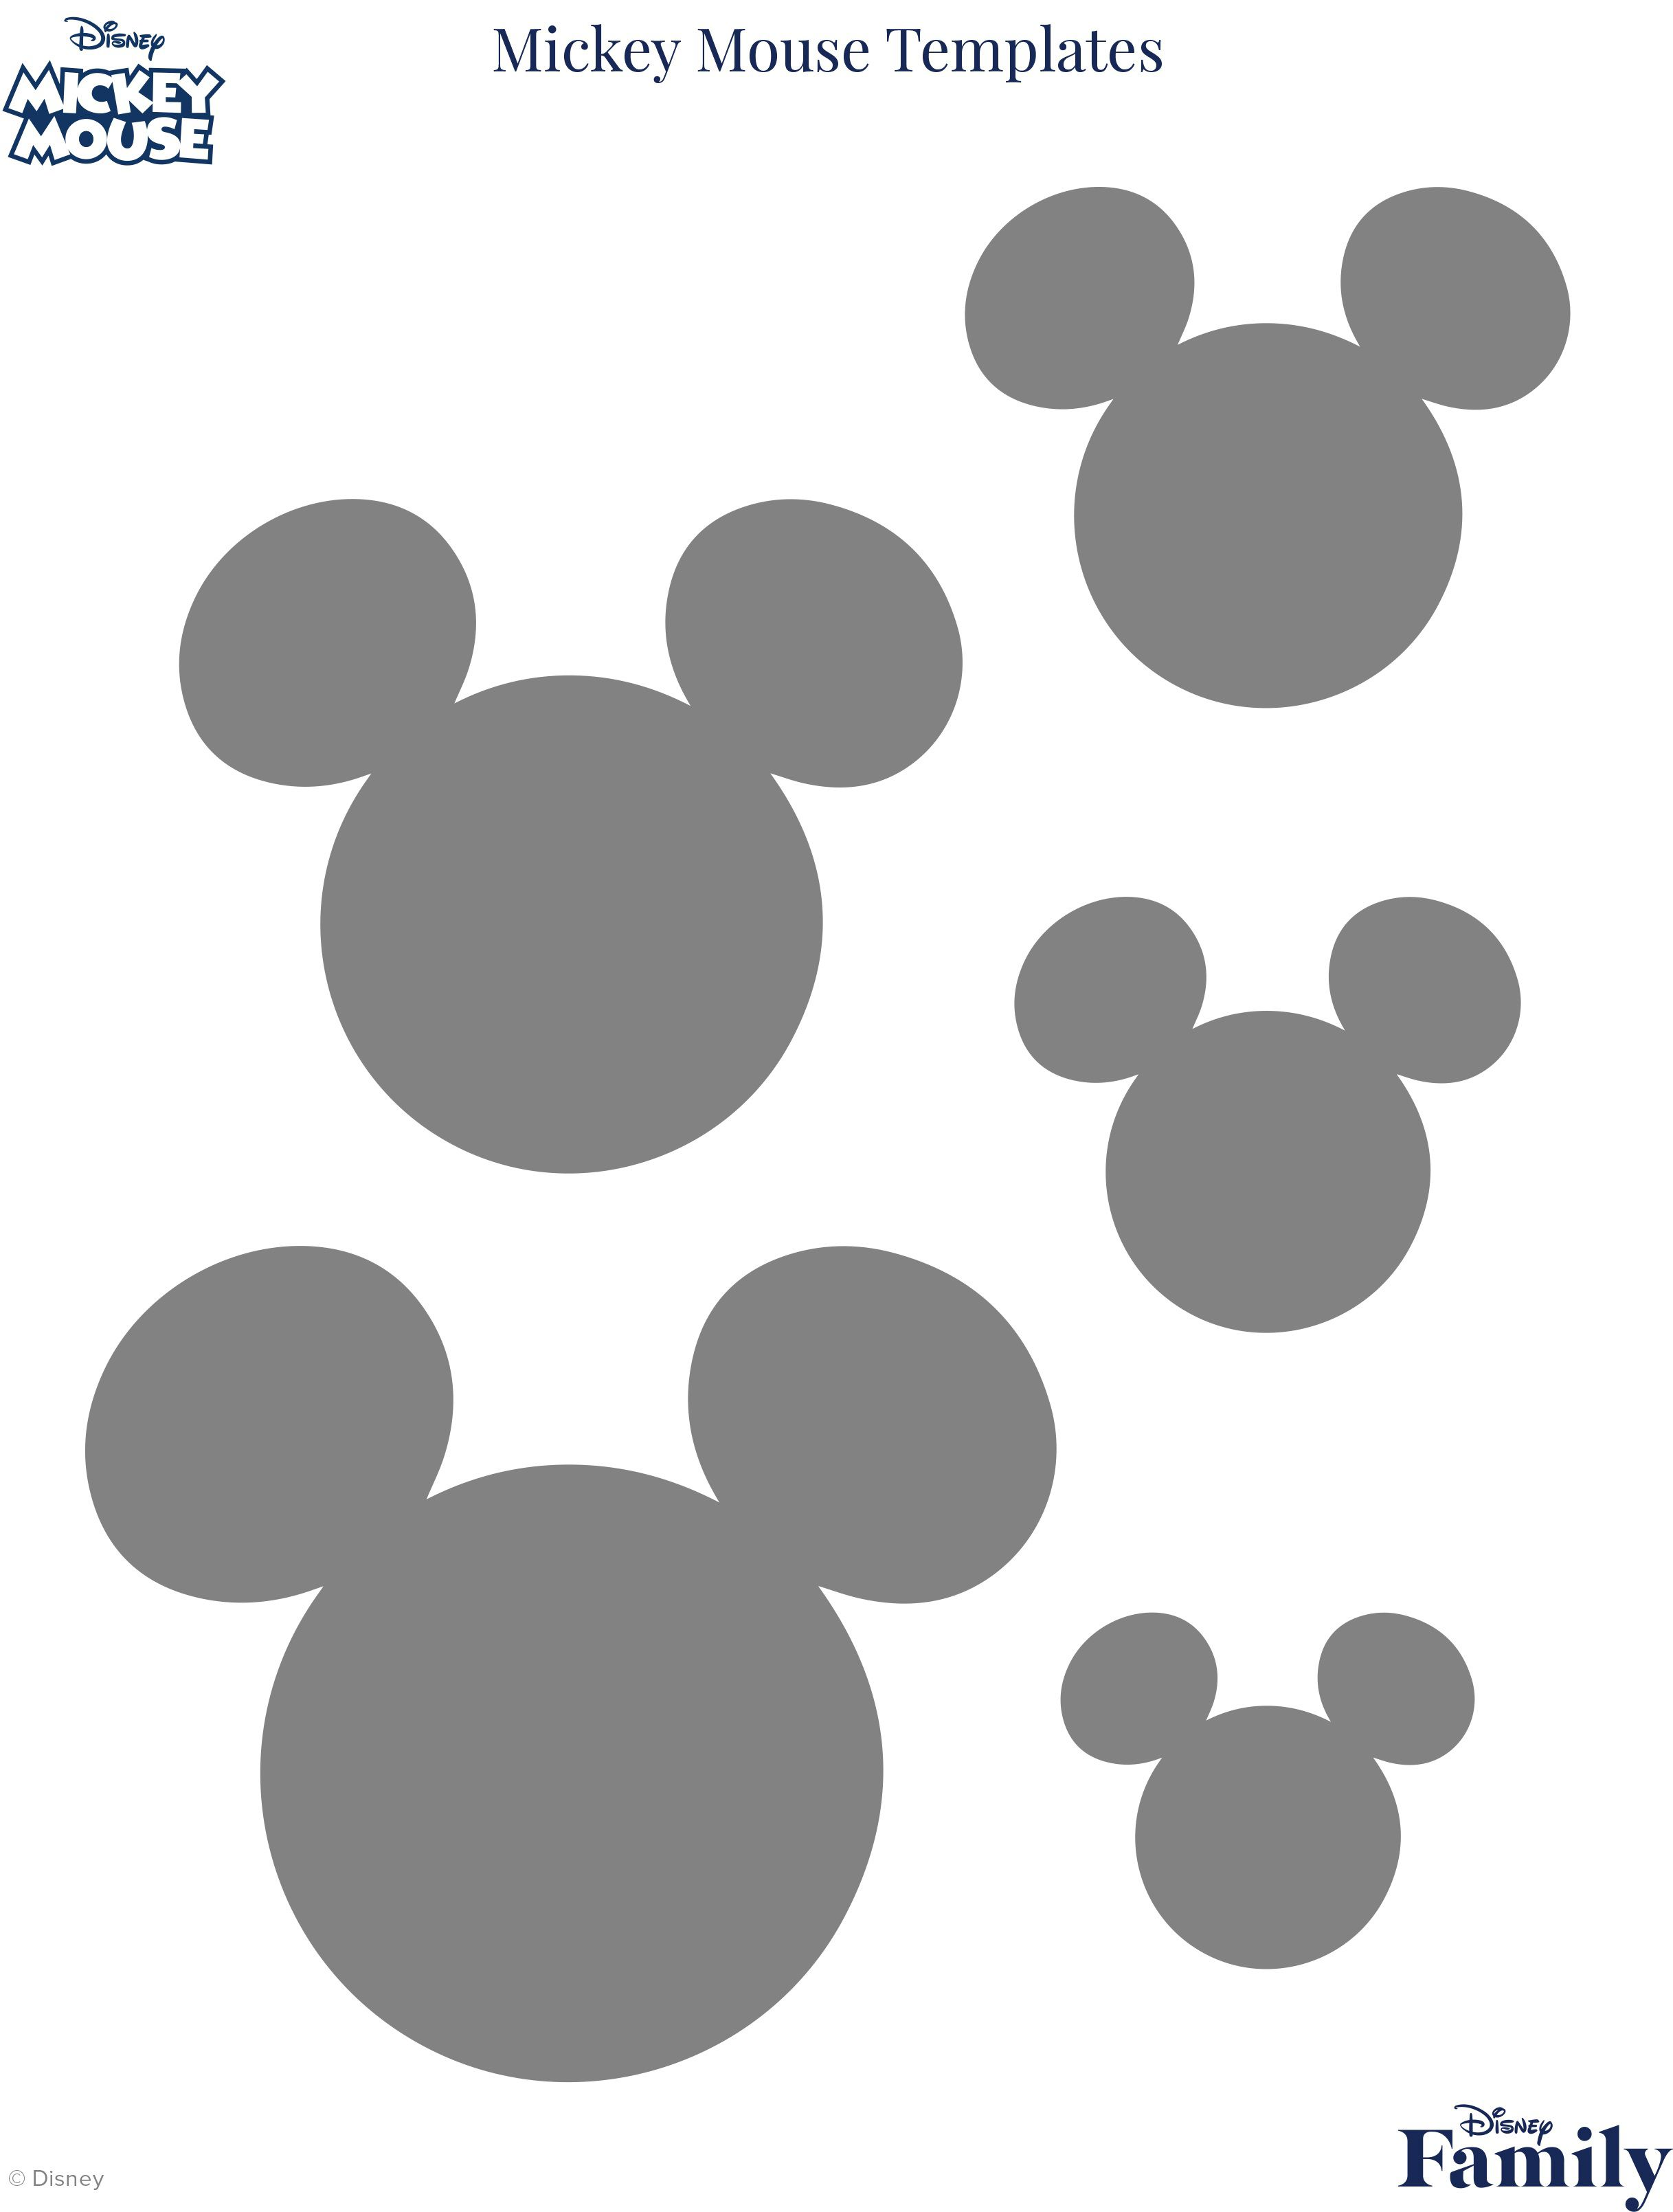 007 Outstanding Mickey Mouse Face Template For Cake Sample  PrintableFull